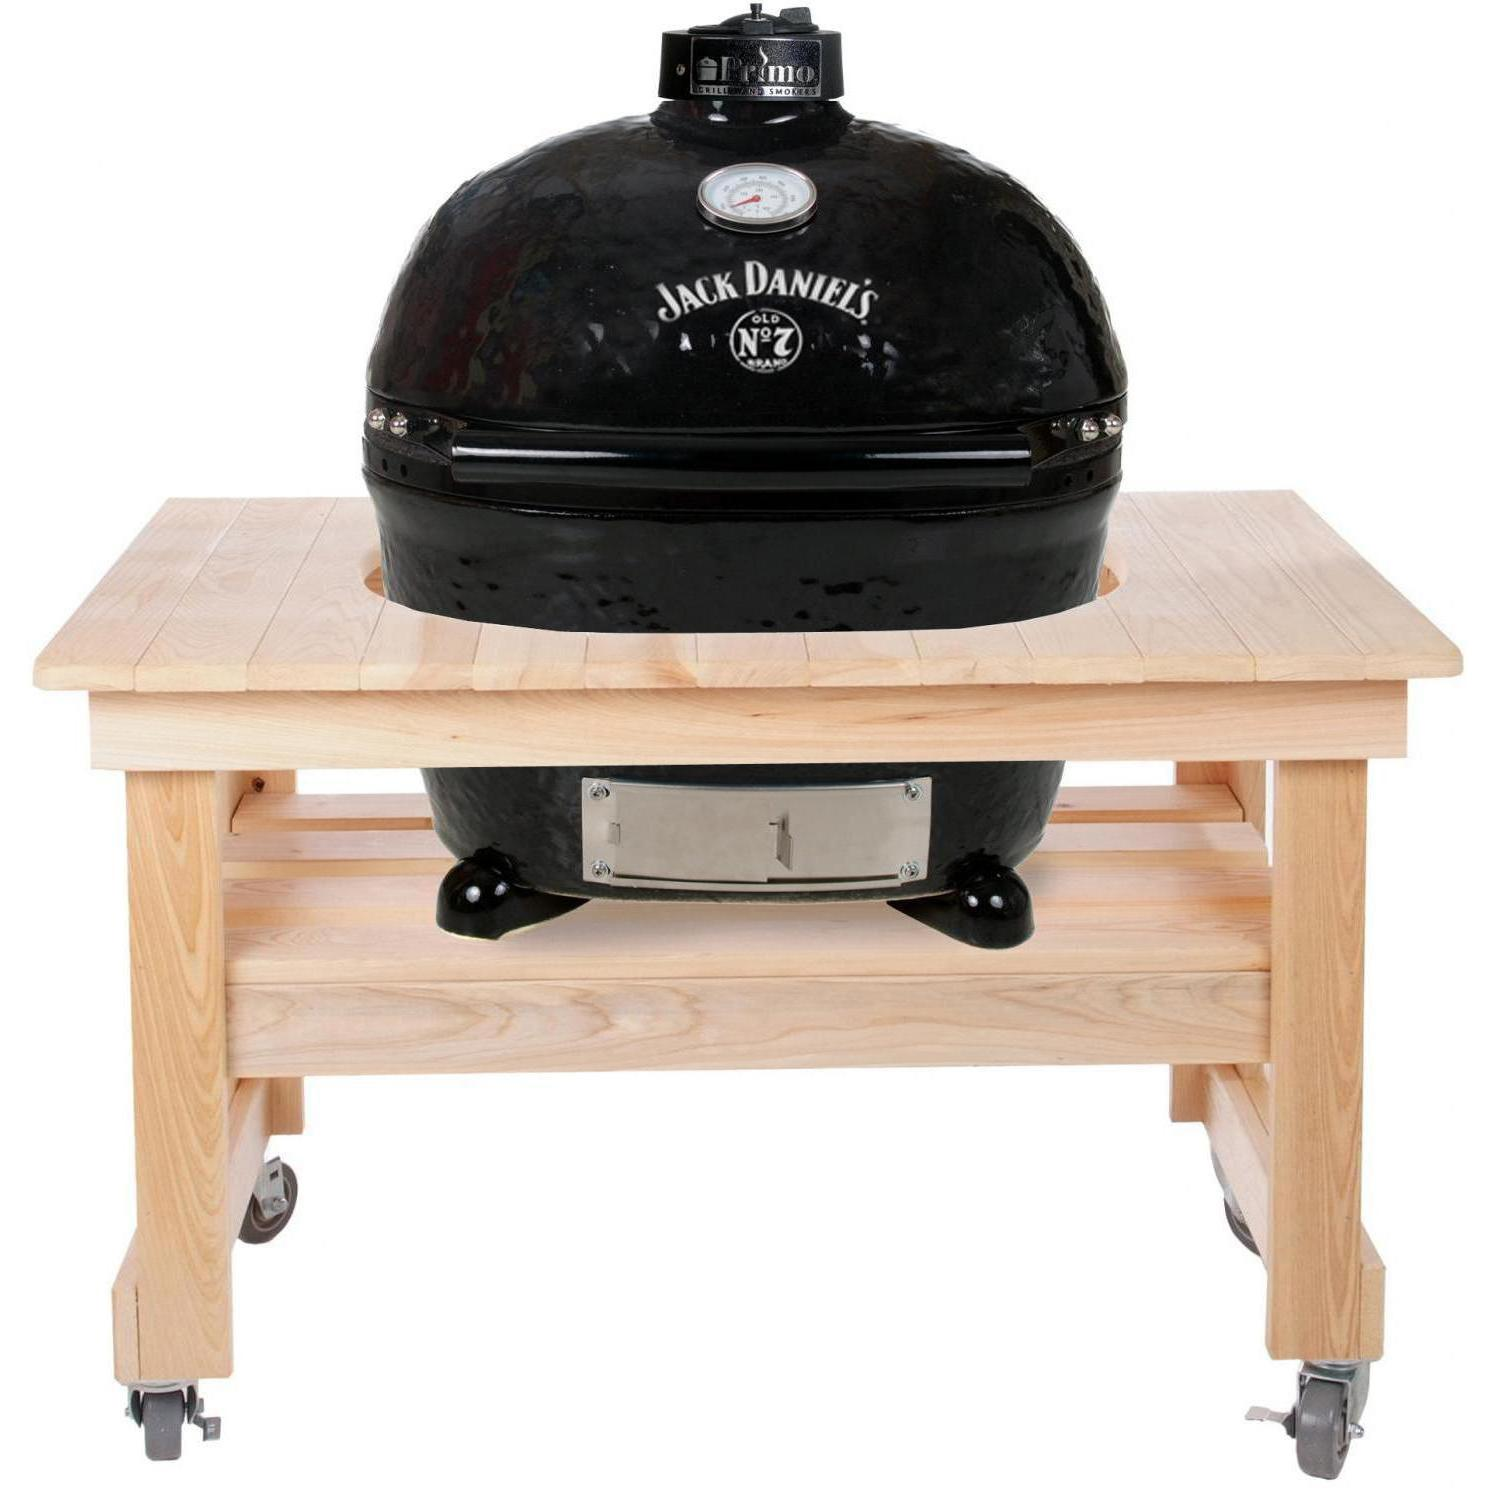 Primo Jack Daniels Edition Oval XL Ceramic Kamado Grill On Compact Cypress Table - 900 + 602